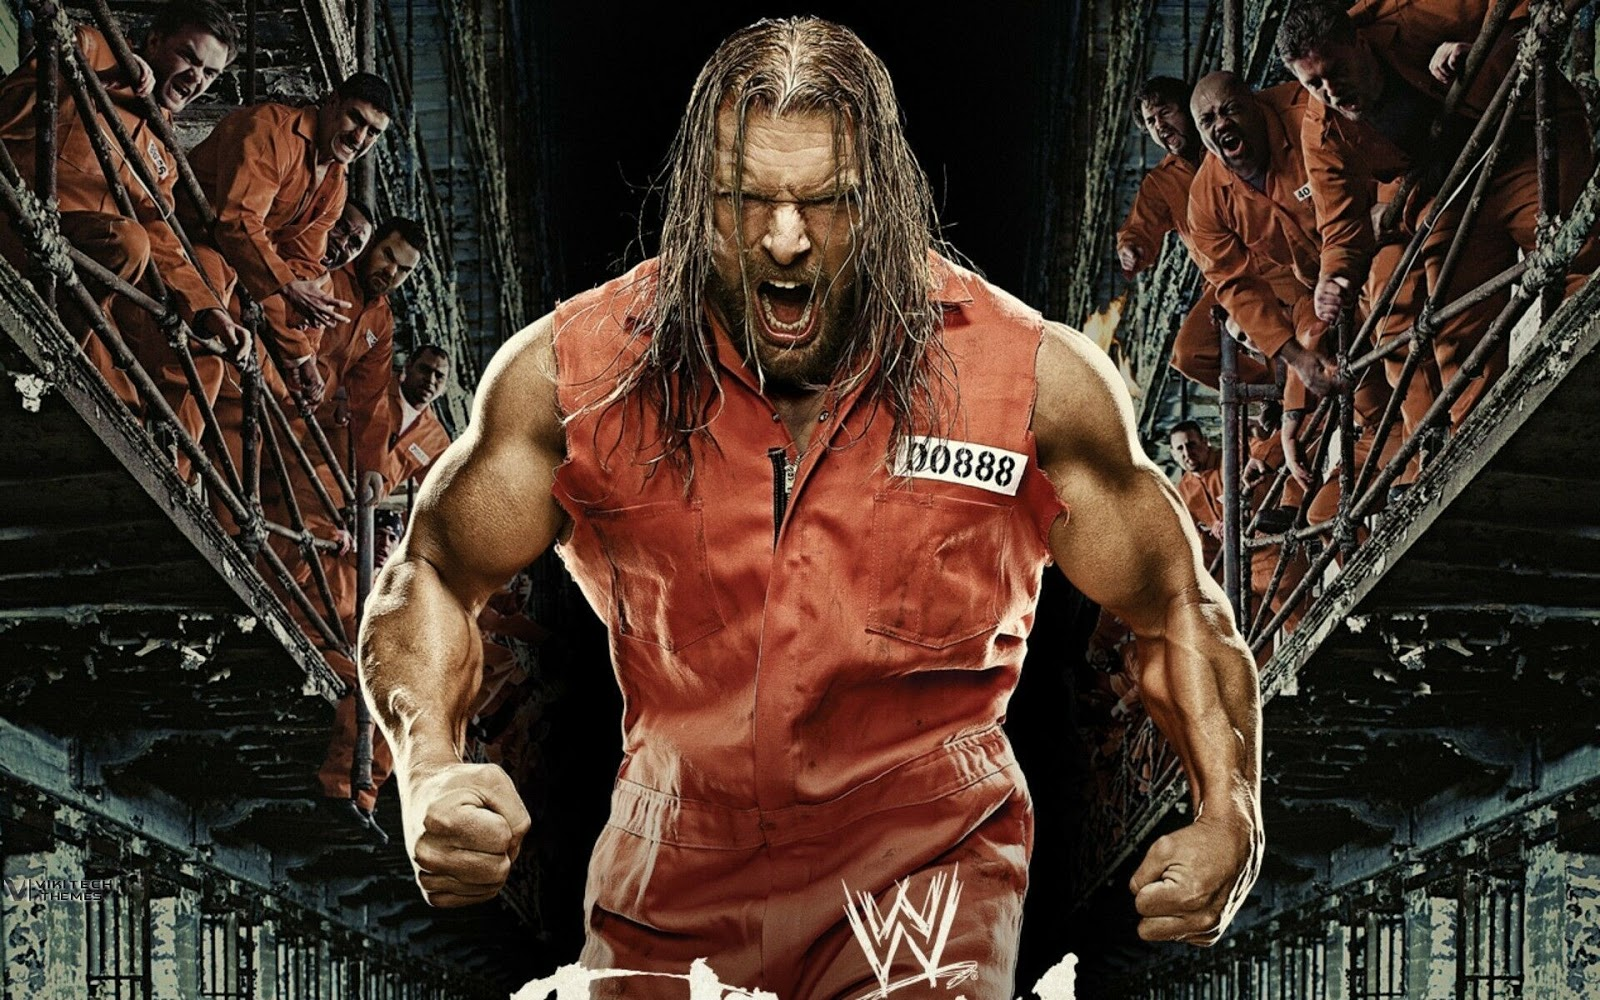 Free Download Wwe Full Hd Wallpapers 2013 1920x1200 Free